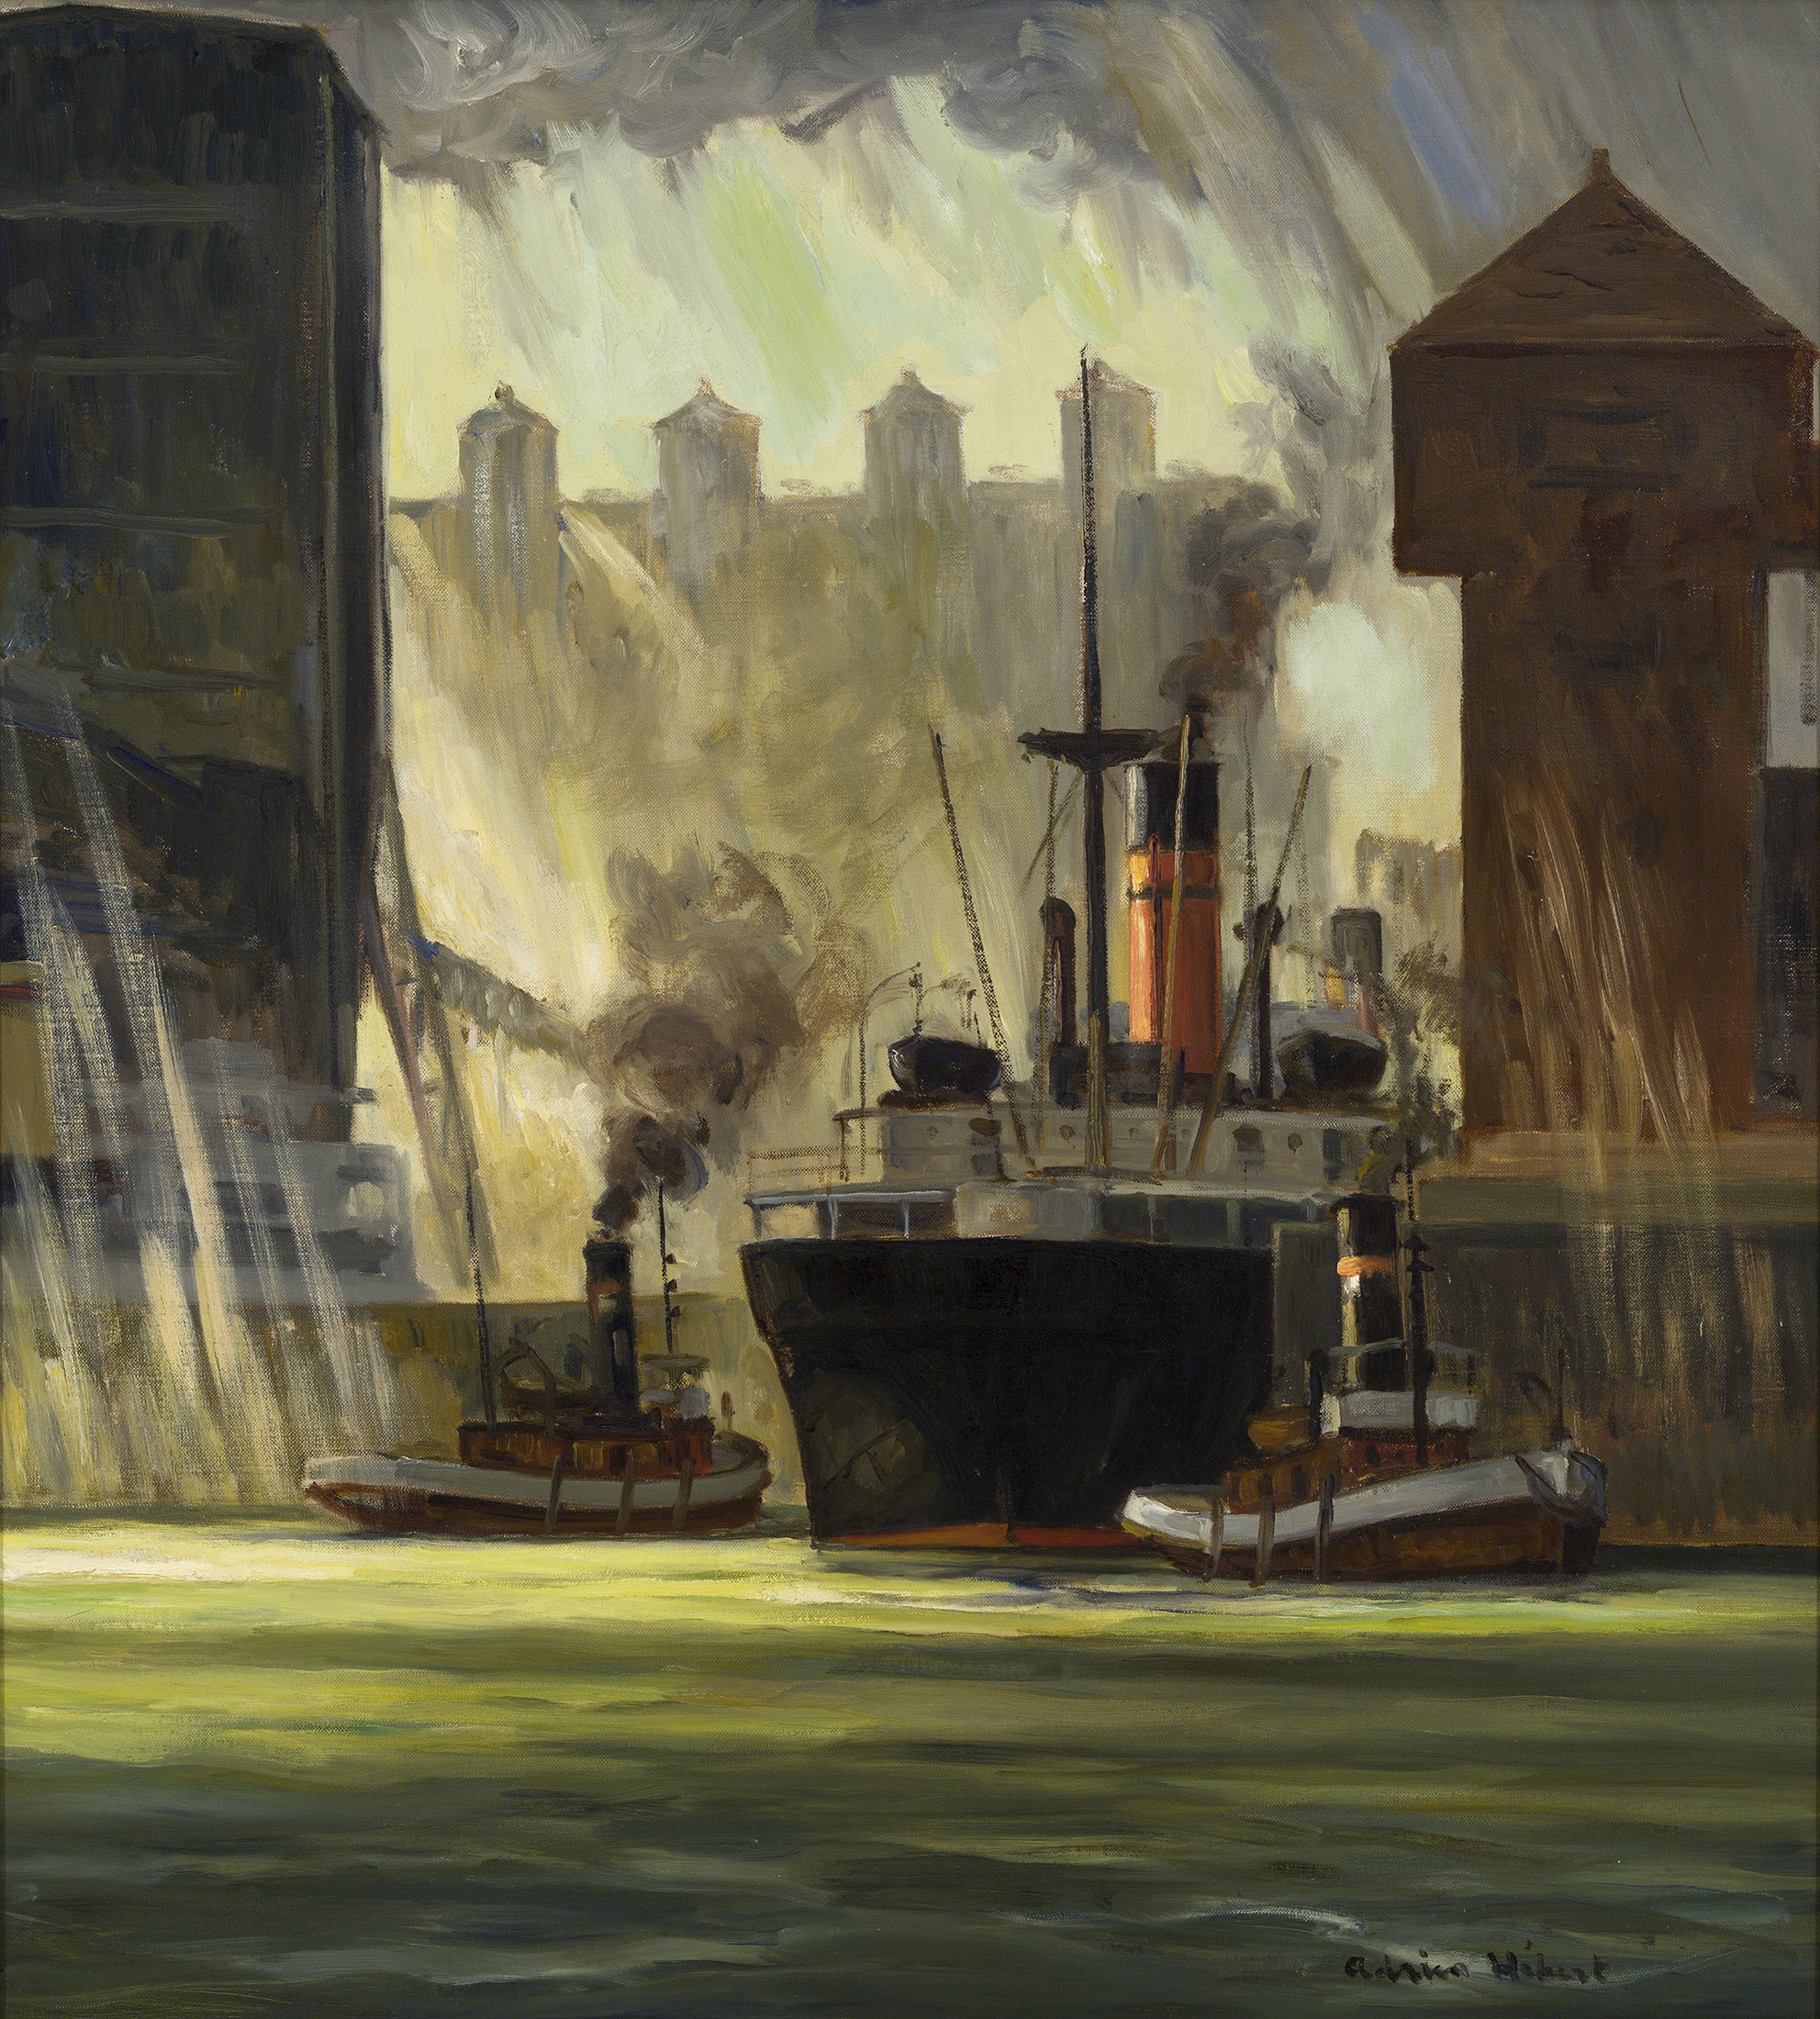 This painting depicts a large cargo ship alongside a dock. It is flanked by two tugboats. The sky is overcast, but rays of light piercing the clouds reflect in the harbour's greenish water.